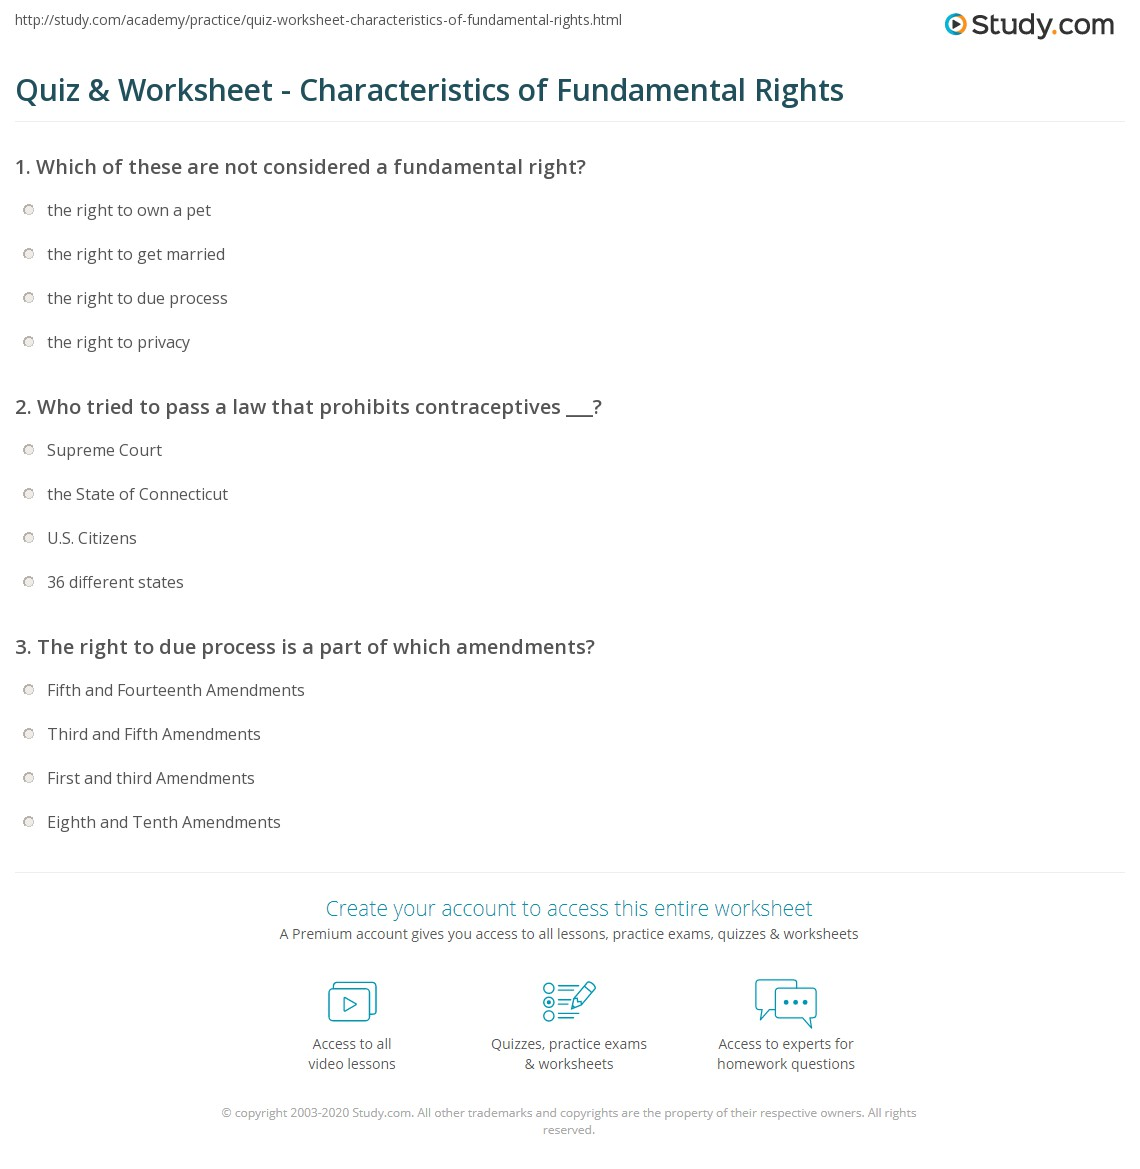 Aldiablosus  Seductive Quiz Amp Worksheet  Characteristics Of Fundamental Rights  Studycom With Fascinating Print What Are Fundamental Rights  Definition Types Amp Features Worksheet With Agreeable Noun Or Verb Worksheet Also Count By  Worksheet In Addition Pattern Worksheets Preschool And Calligraphy Handwriting Worksheets As Well As One Digit Subtraction Worksheets Additionally Decimal And Fraction Worksheet From Studycom With Aldiablosus  Fascinating Quiz Amp Worksheet  Characteristics Of Fundamental Rights  Studycom With Agreeable Print What Are Fundamental Rights  Definition Types Amp Features Worksheet And Seductive Noun Or Verb Worksheet Also Count By  Worksheet In Addition Pattern Worksheets Preschool From Studycom